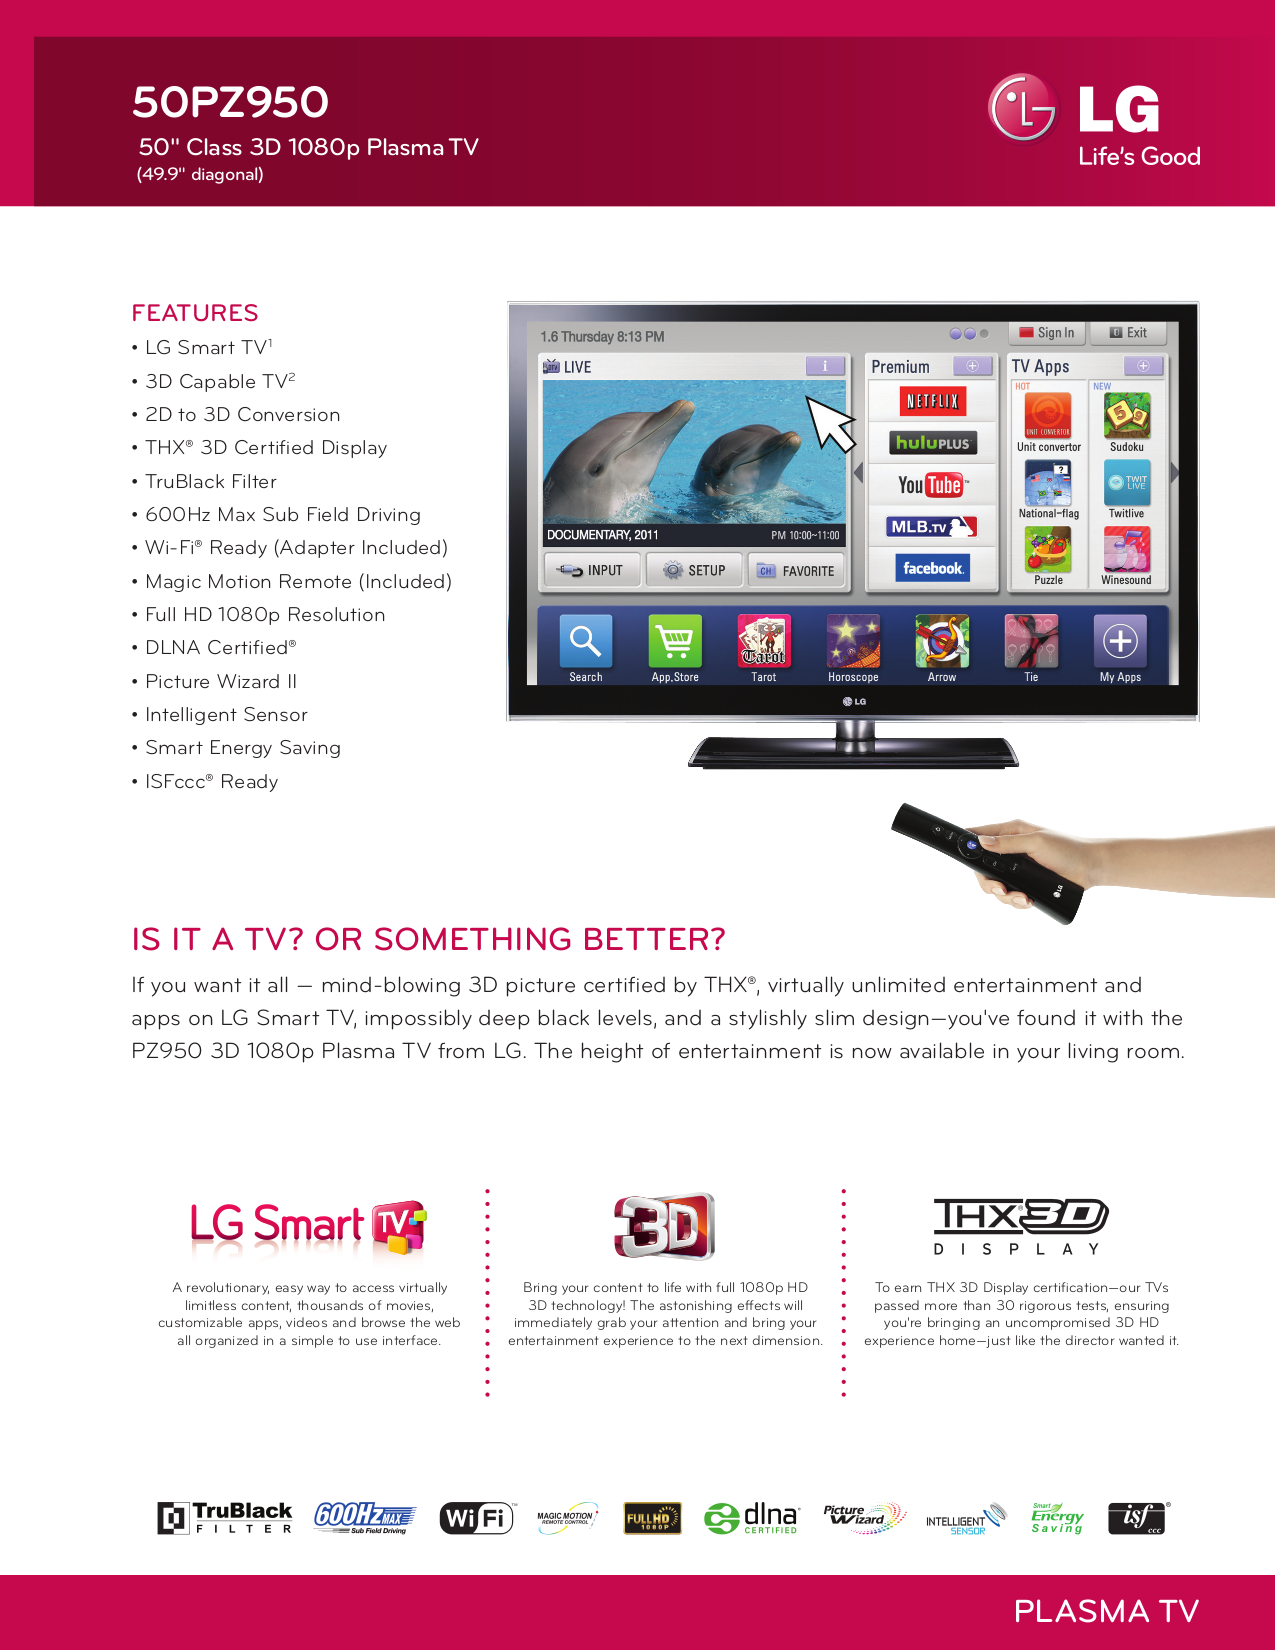 pdf for LG Plasma TV 50PZ950 manual